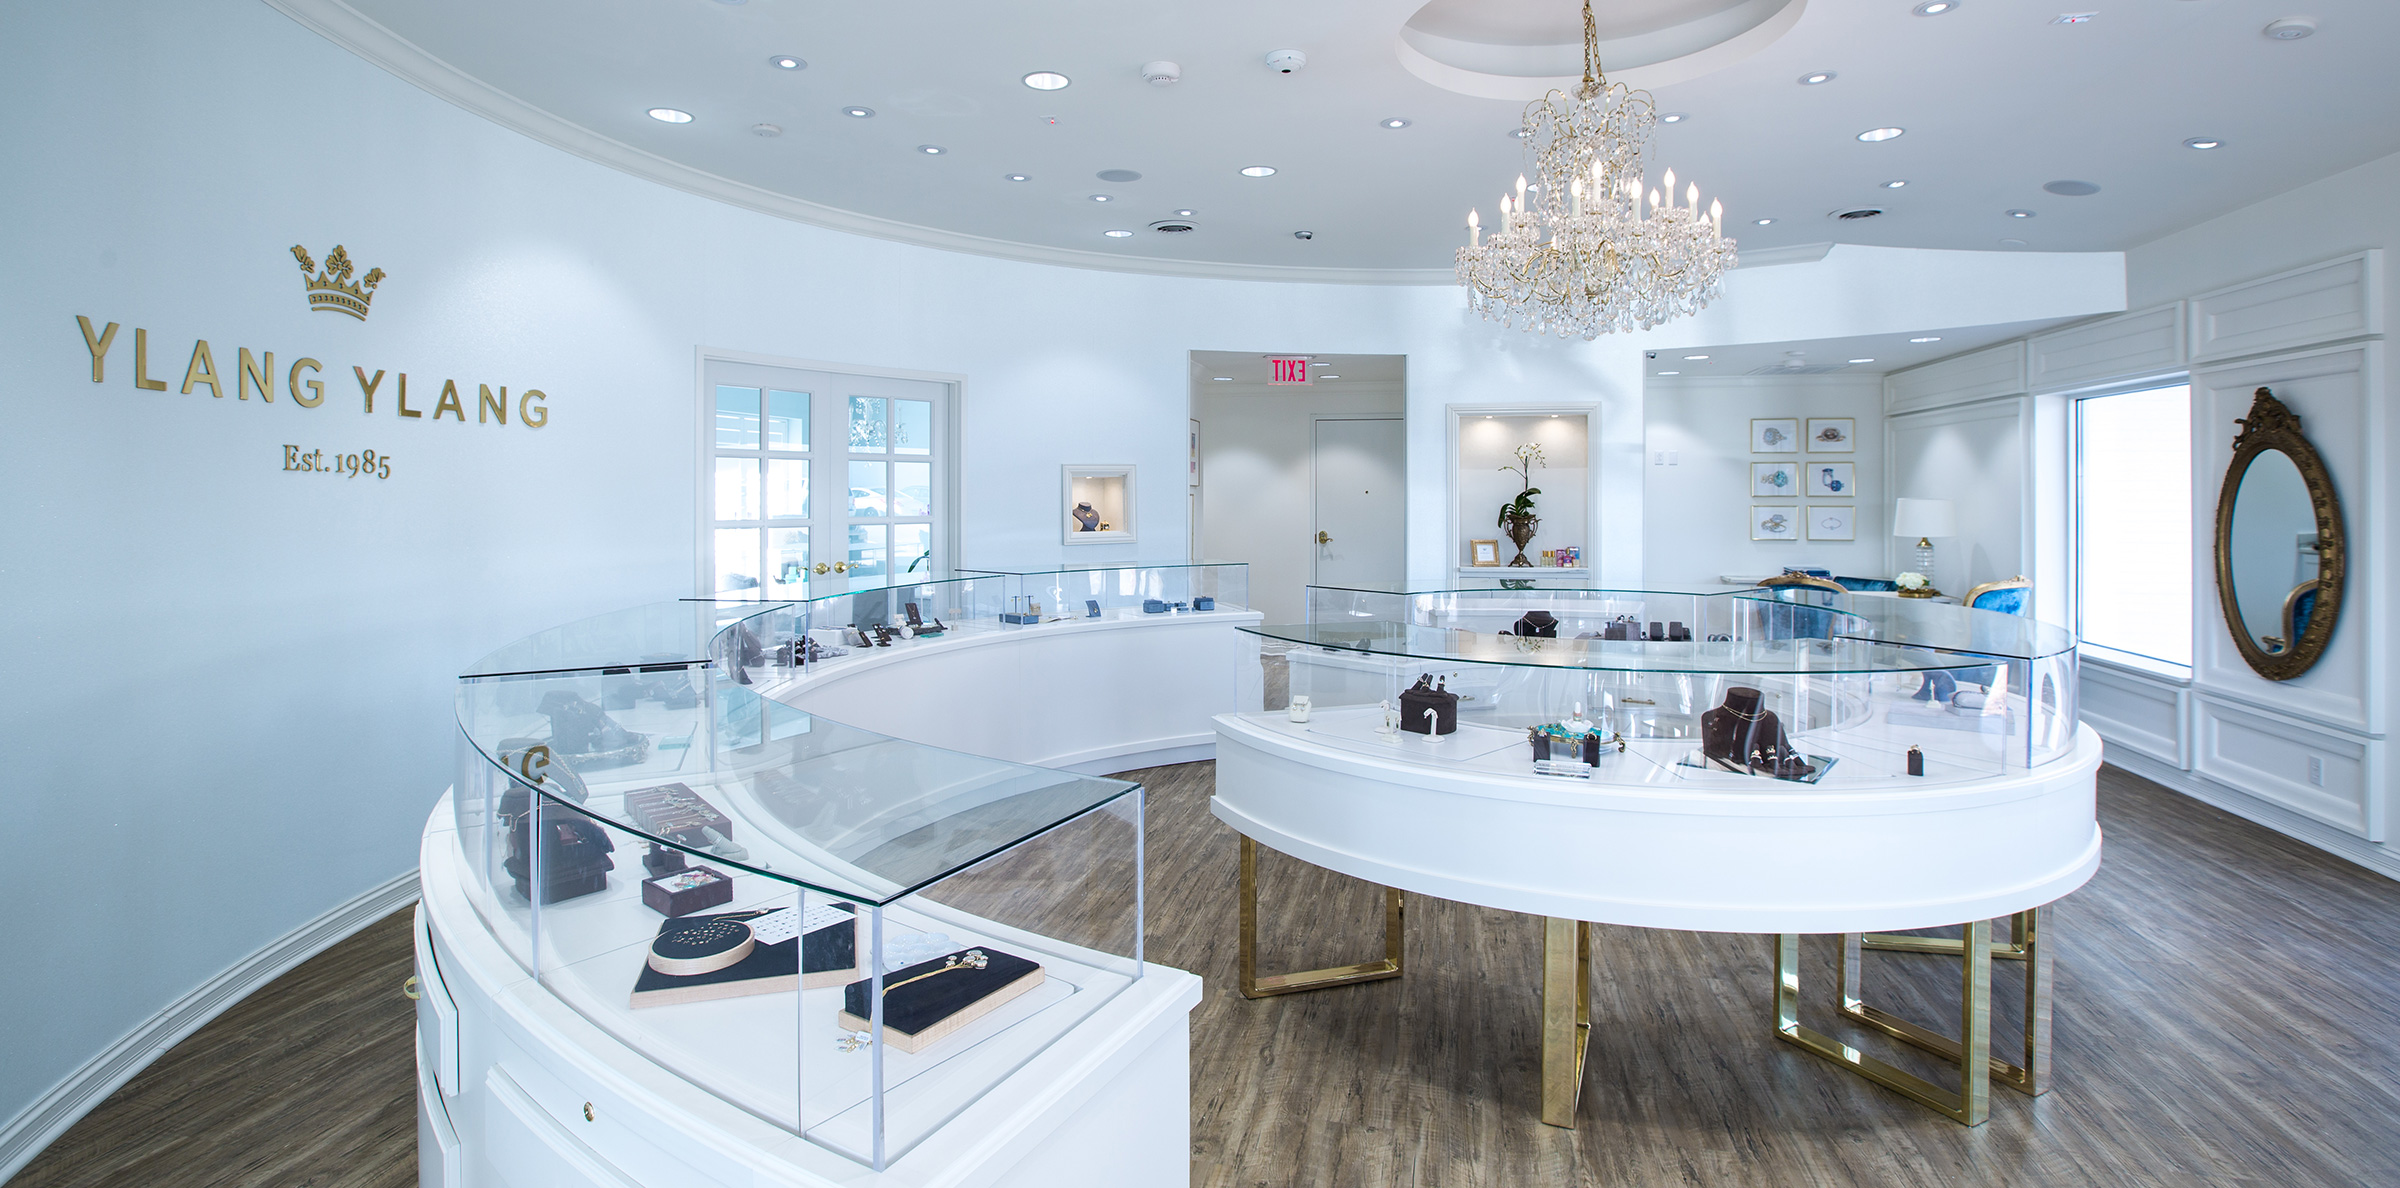 This Cool Store's Custom-Curved Showcases Embrace Shoppers